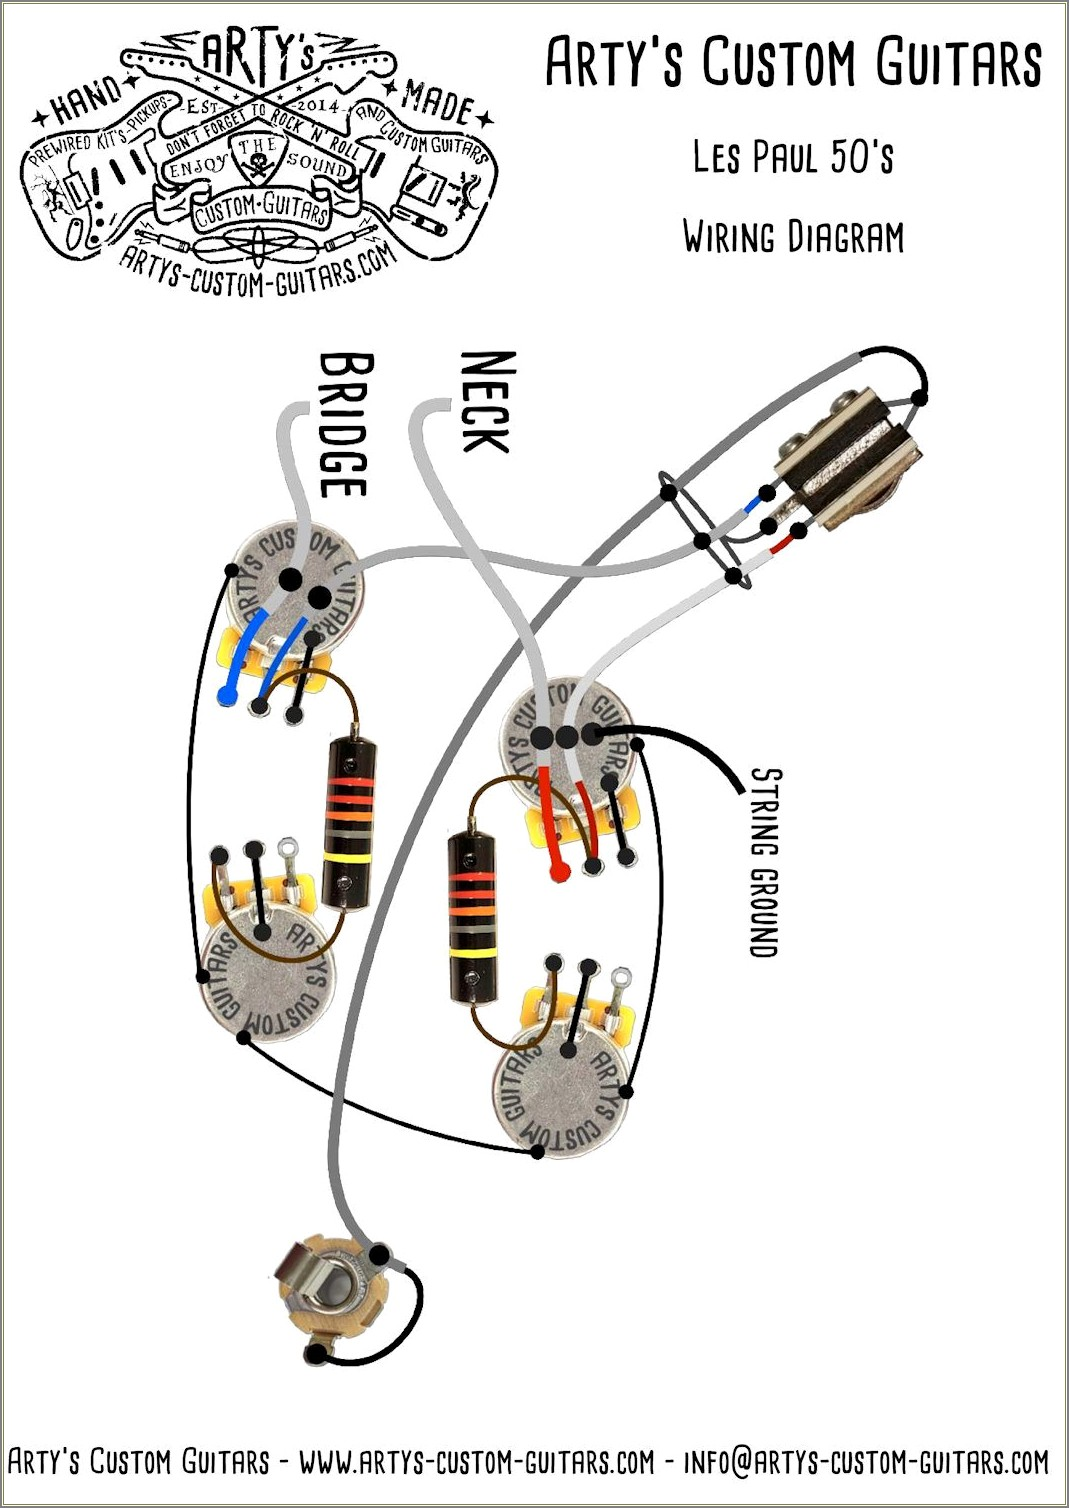 Les Paul Wiring Diagram 50s